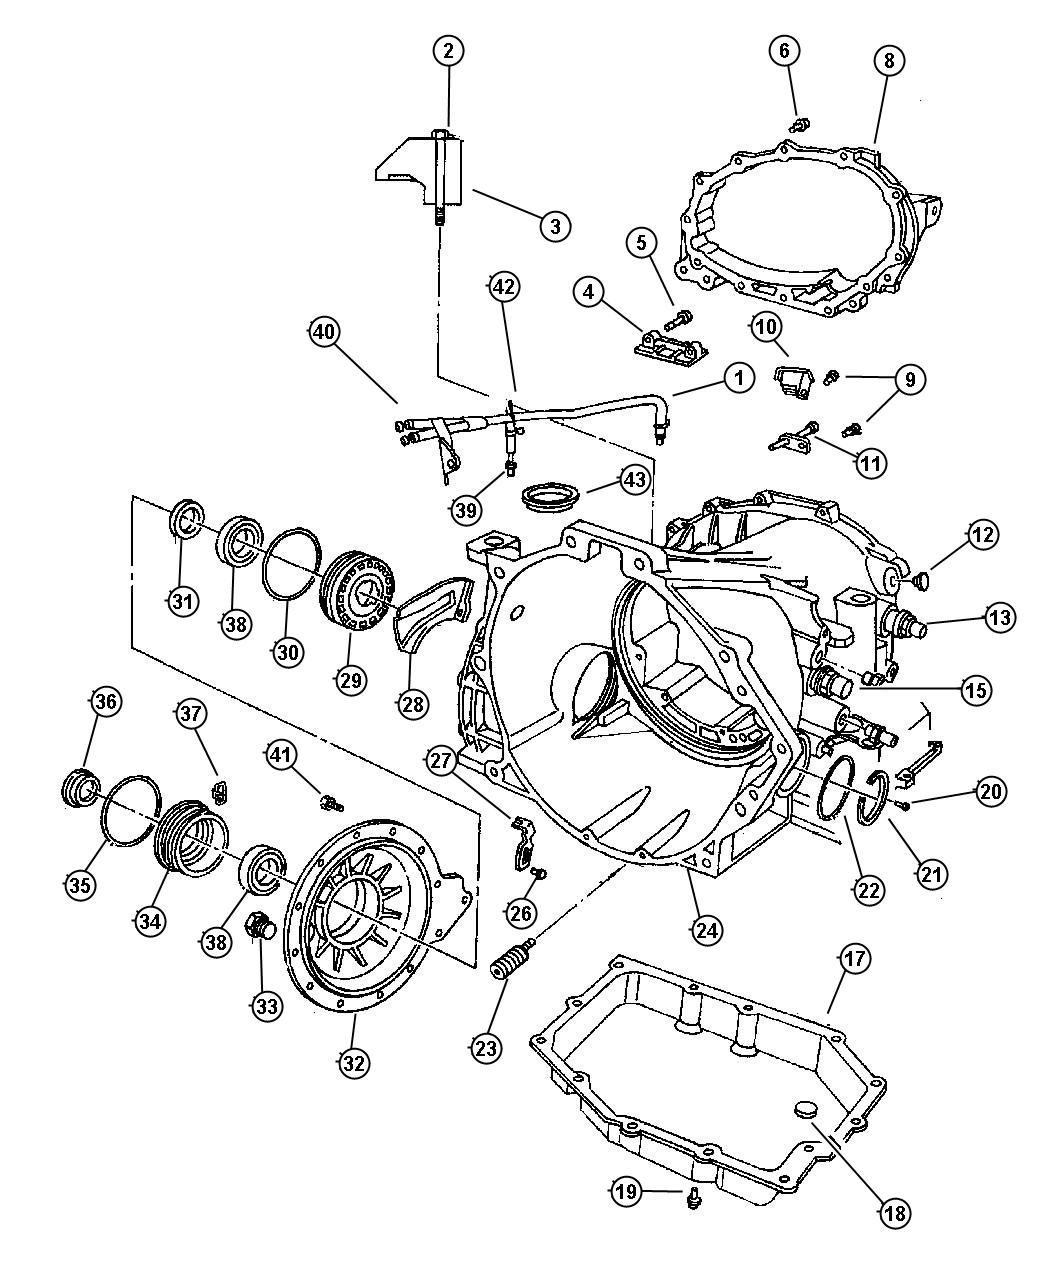 2001 Chrysler Concorde Cover. Transaxle differential